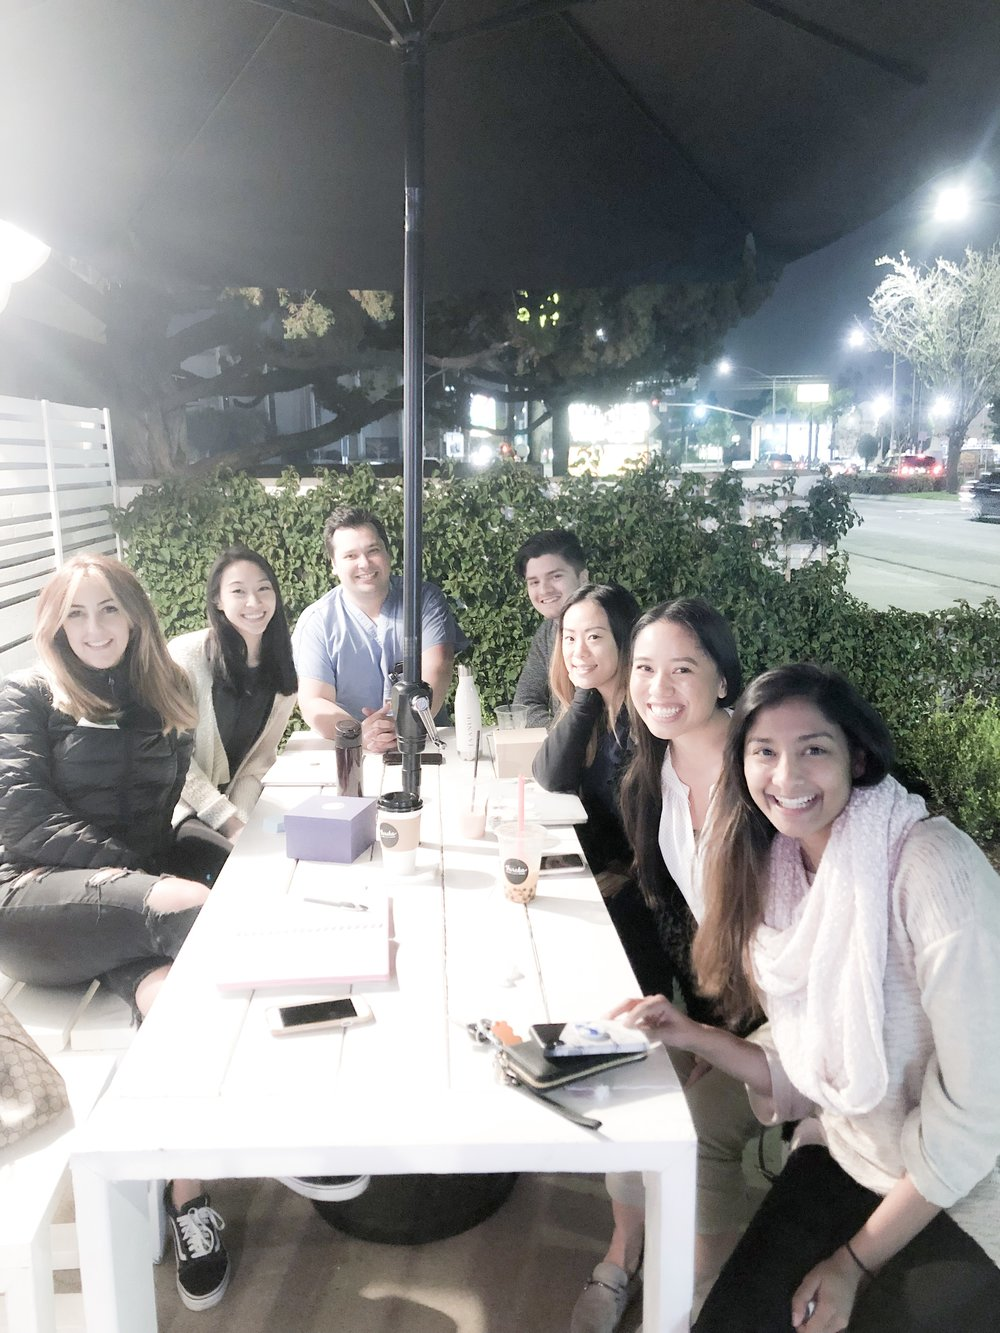 """January 2019 Meet-Up was a success! These lovely humans drove from Beverly Hills, Fontana, Monterey Park and Ontario 😱 like, omg.. you guys are amazing! We had pre-PAs, PA students and a PA-C last night. We shared experiences, advice, tips and so much more. I even got job application and interview tips from the amazing Ortho PA Josh :) Attendees got a special email from me with an """"Applying to PA school Checklist"""" attached 🤗 Thank you for all your support~ See you guys at the next meet-up!"""